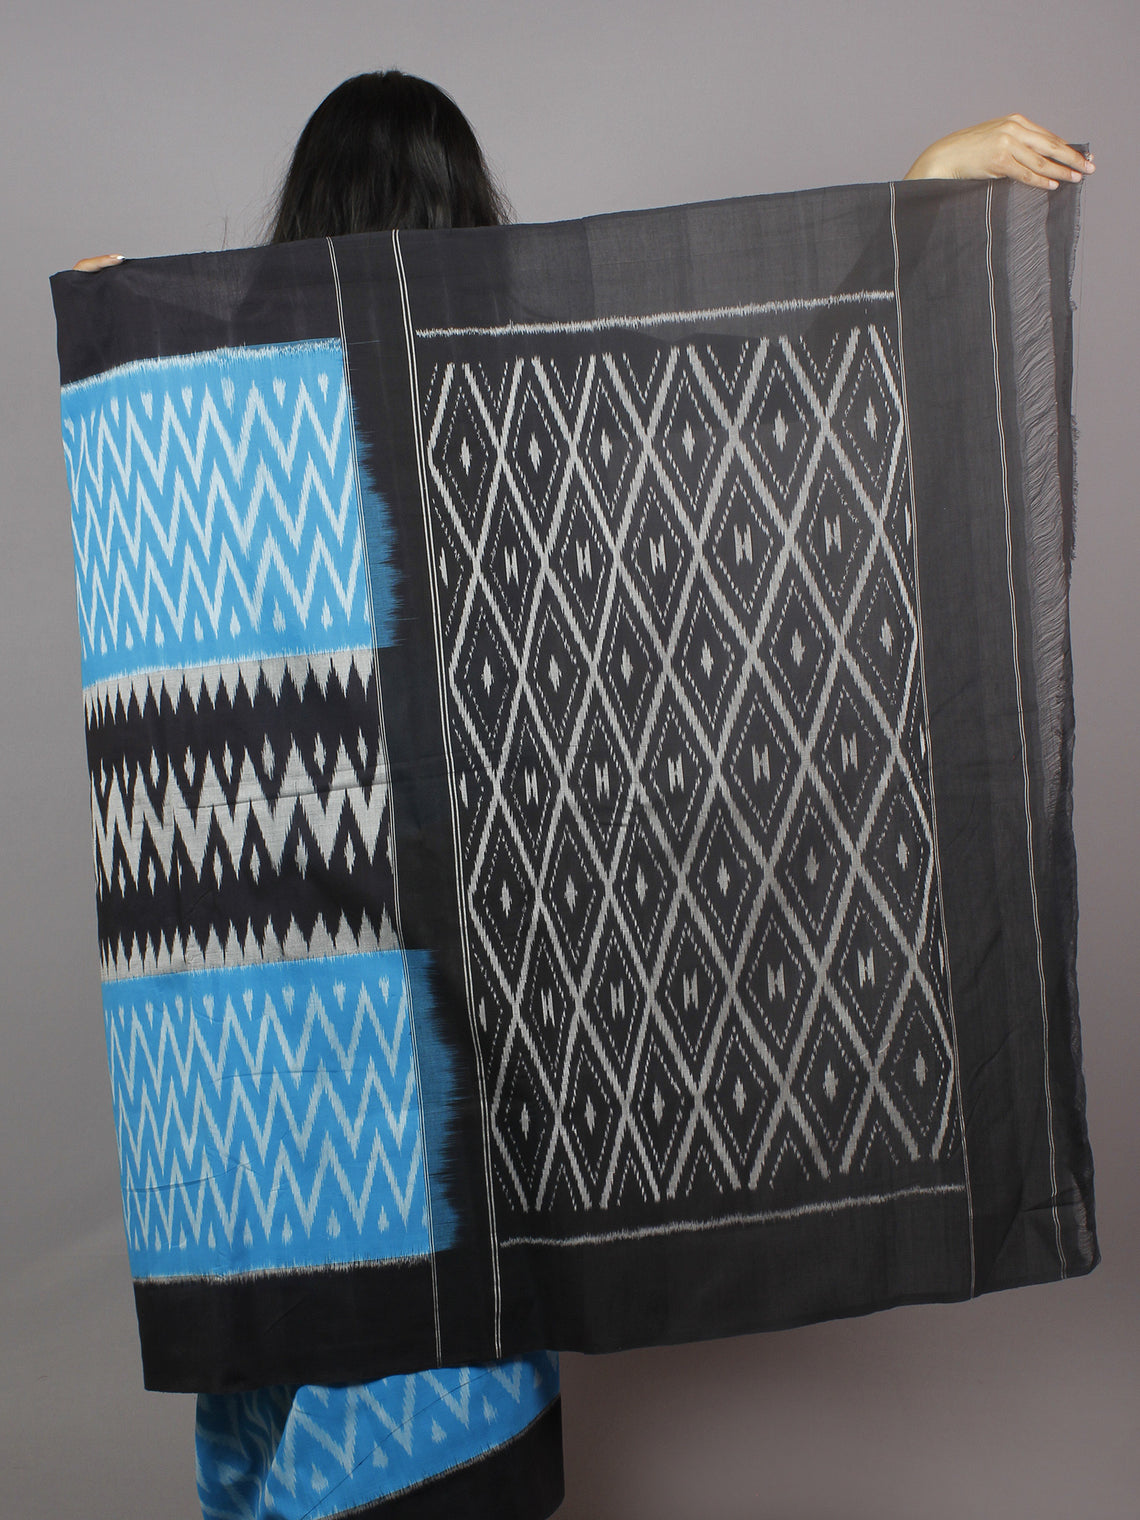 Azure Blue Grey Black White Ikat Handwoven Pochampally Mercerized Cotton Saree - S031701264